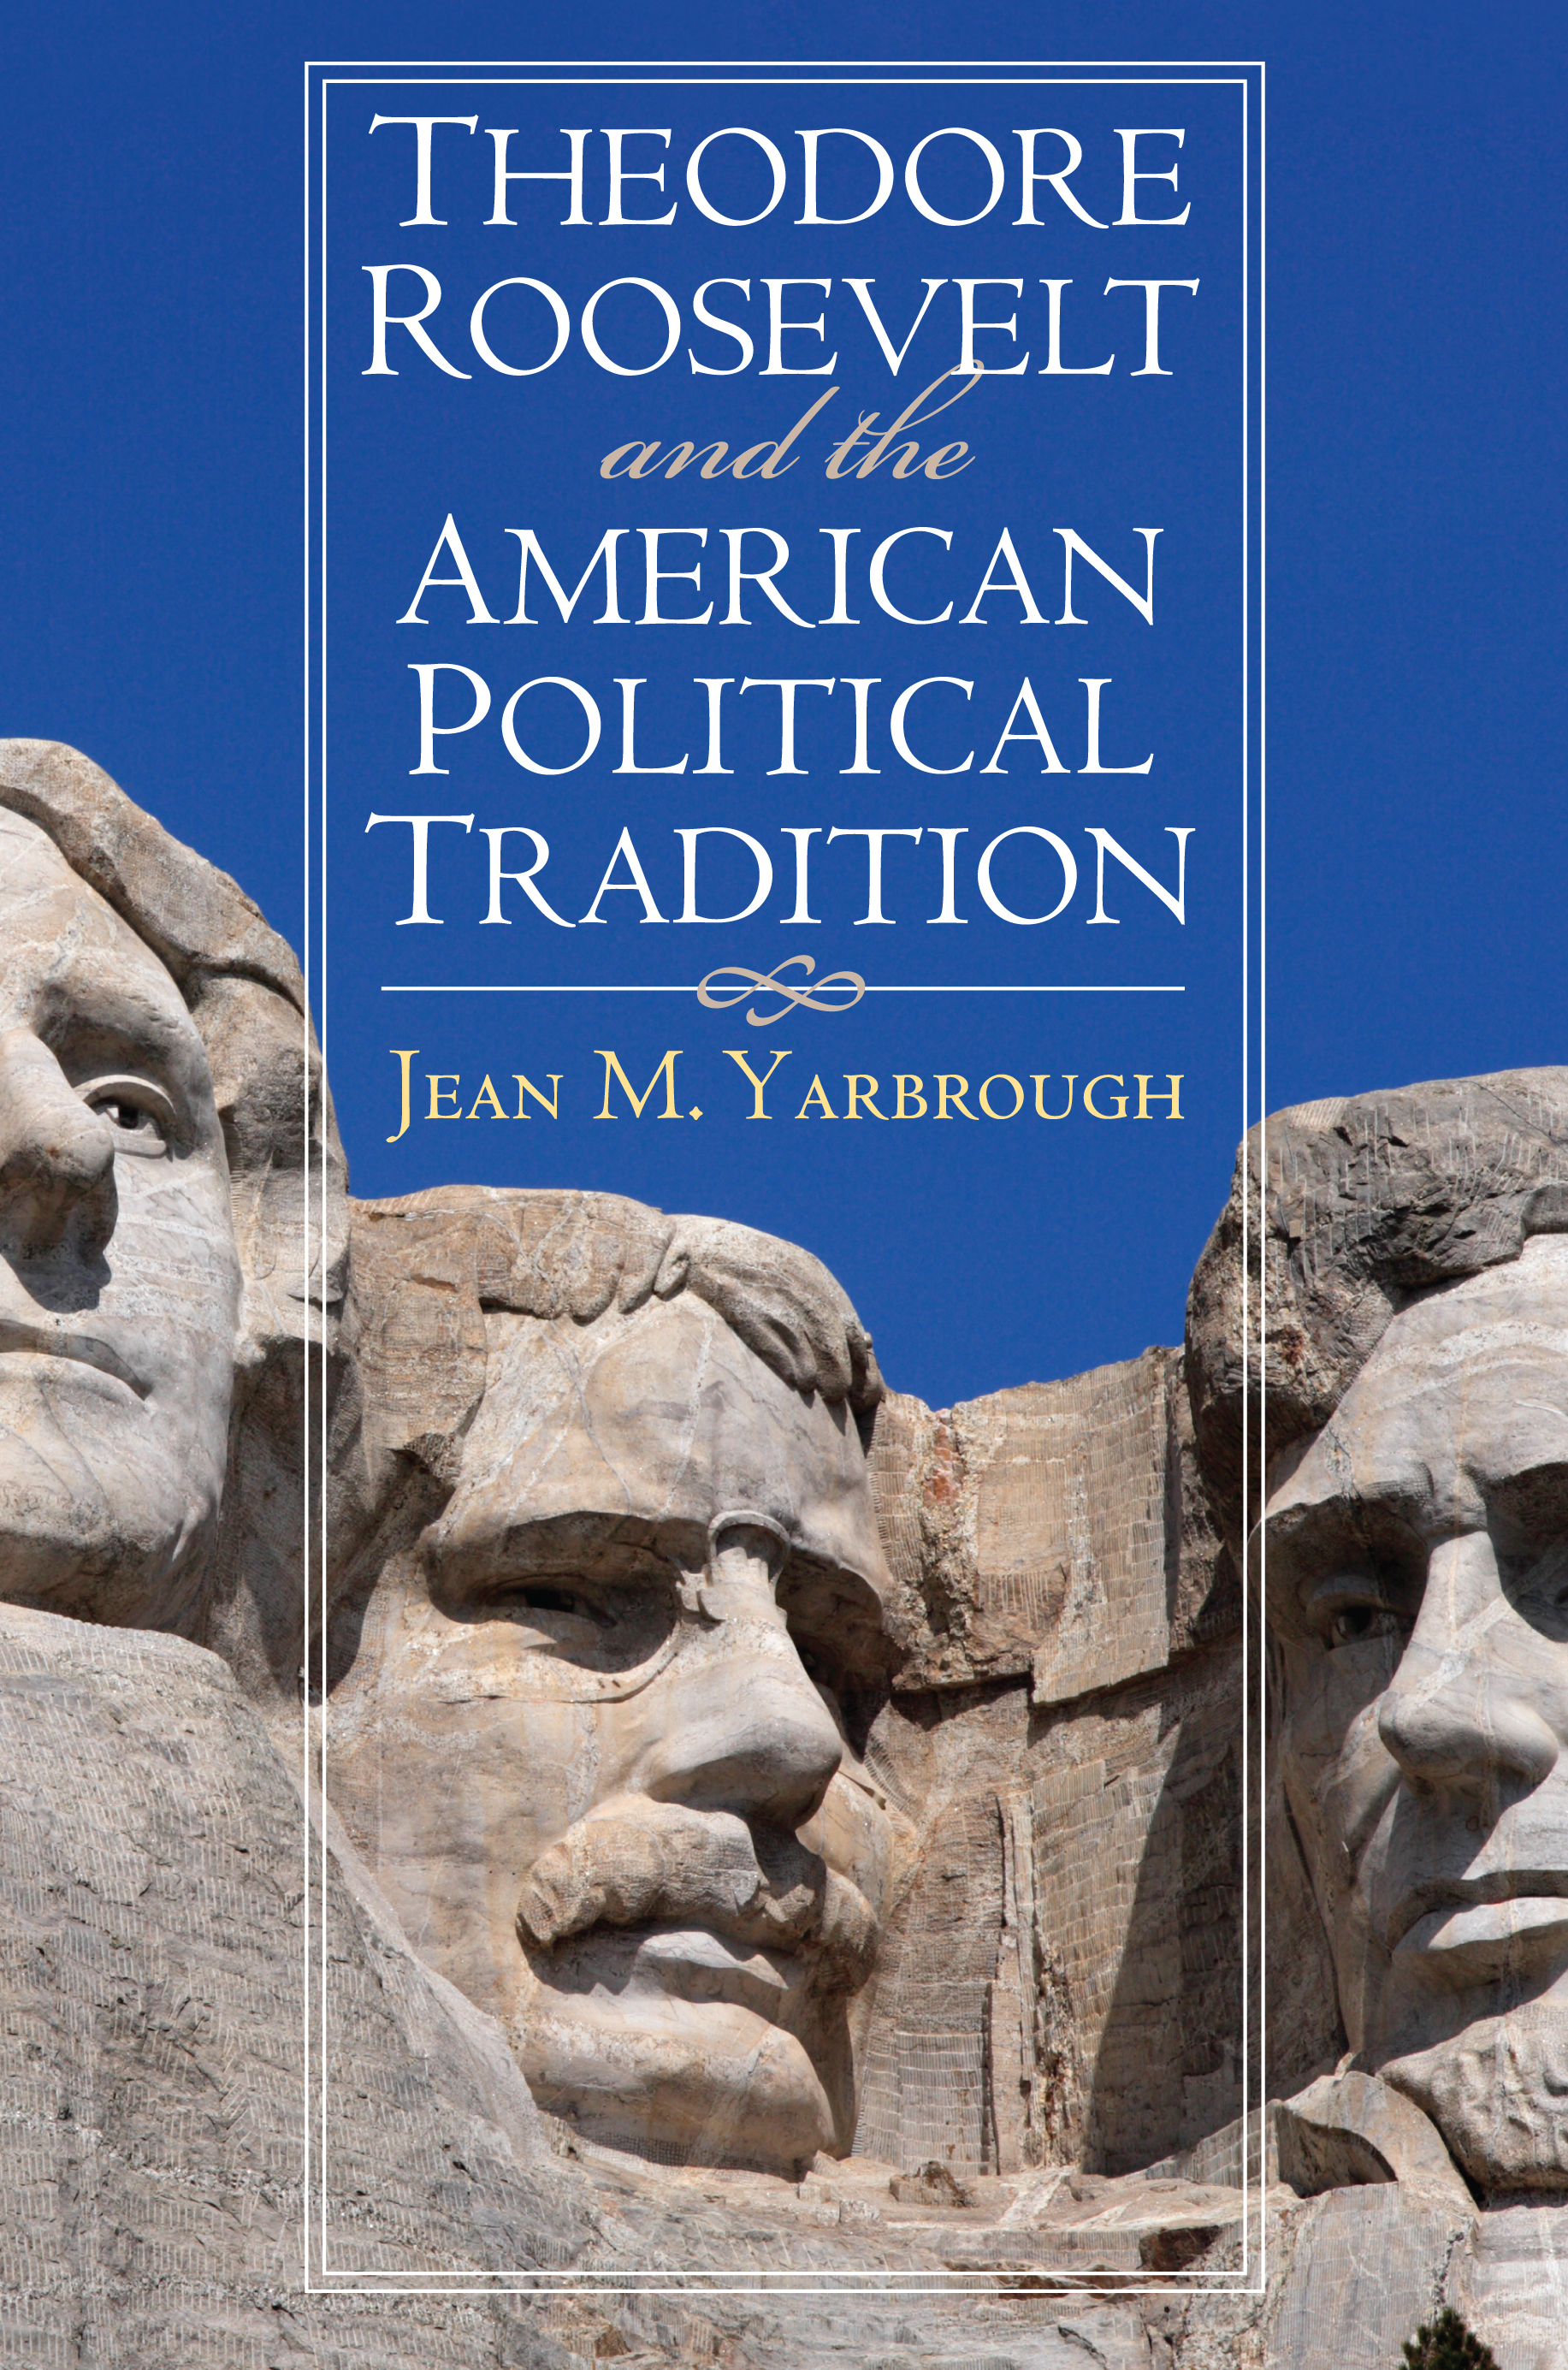 an analysis of the american political tradition The book out of many, one: obama and the third american political tradition,  ruth o'brien is published by university of chicago press.